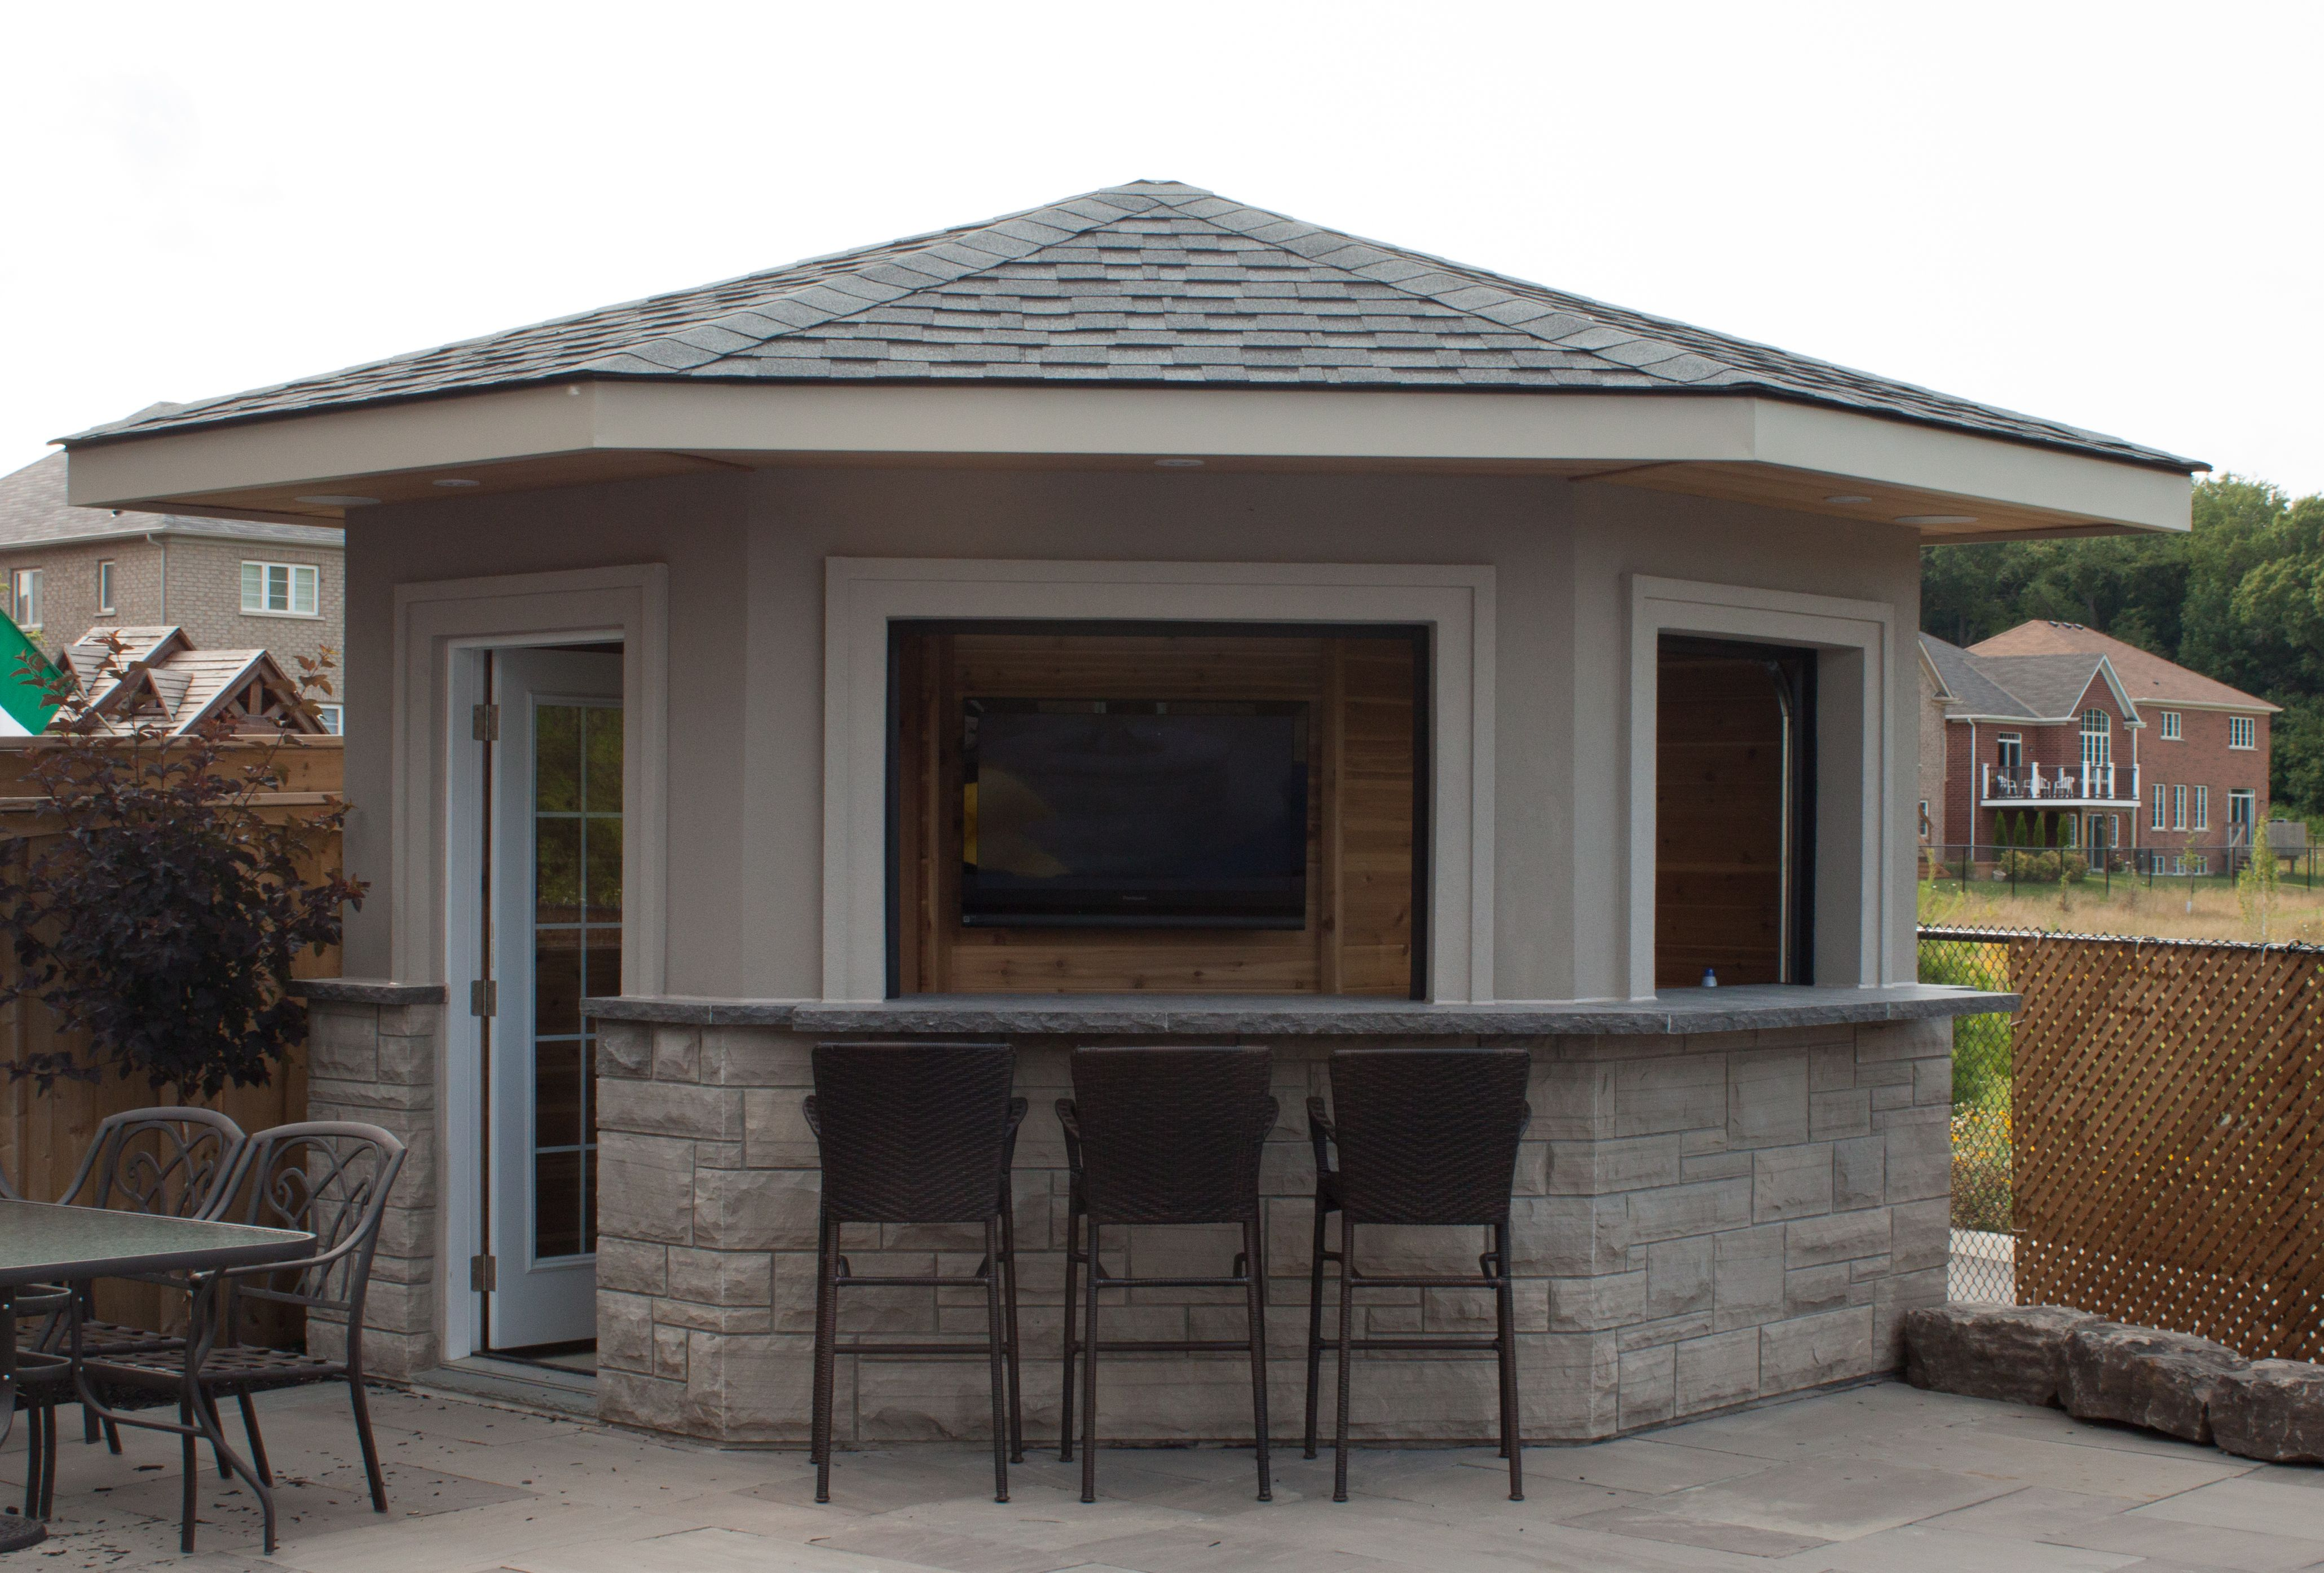 5 sided shed pool house cabana featuring stucco exterior and garage